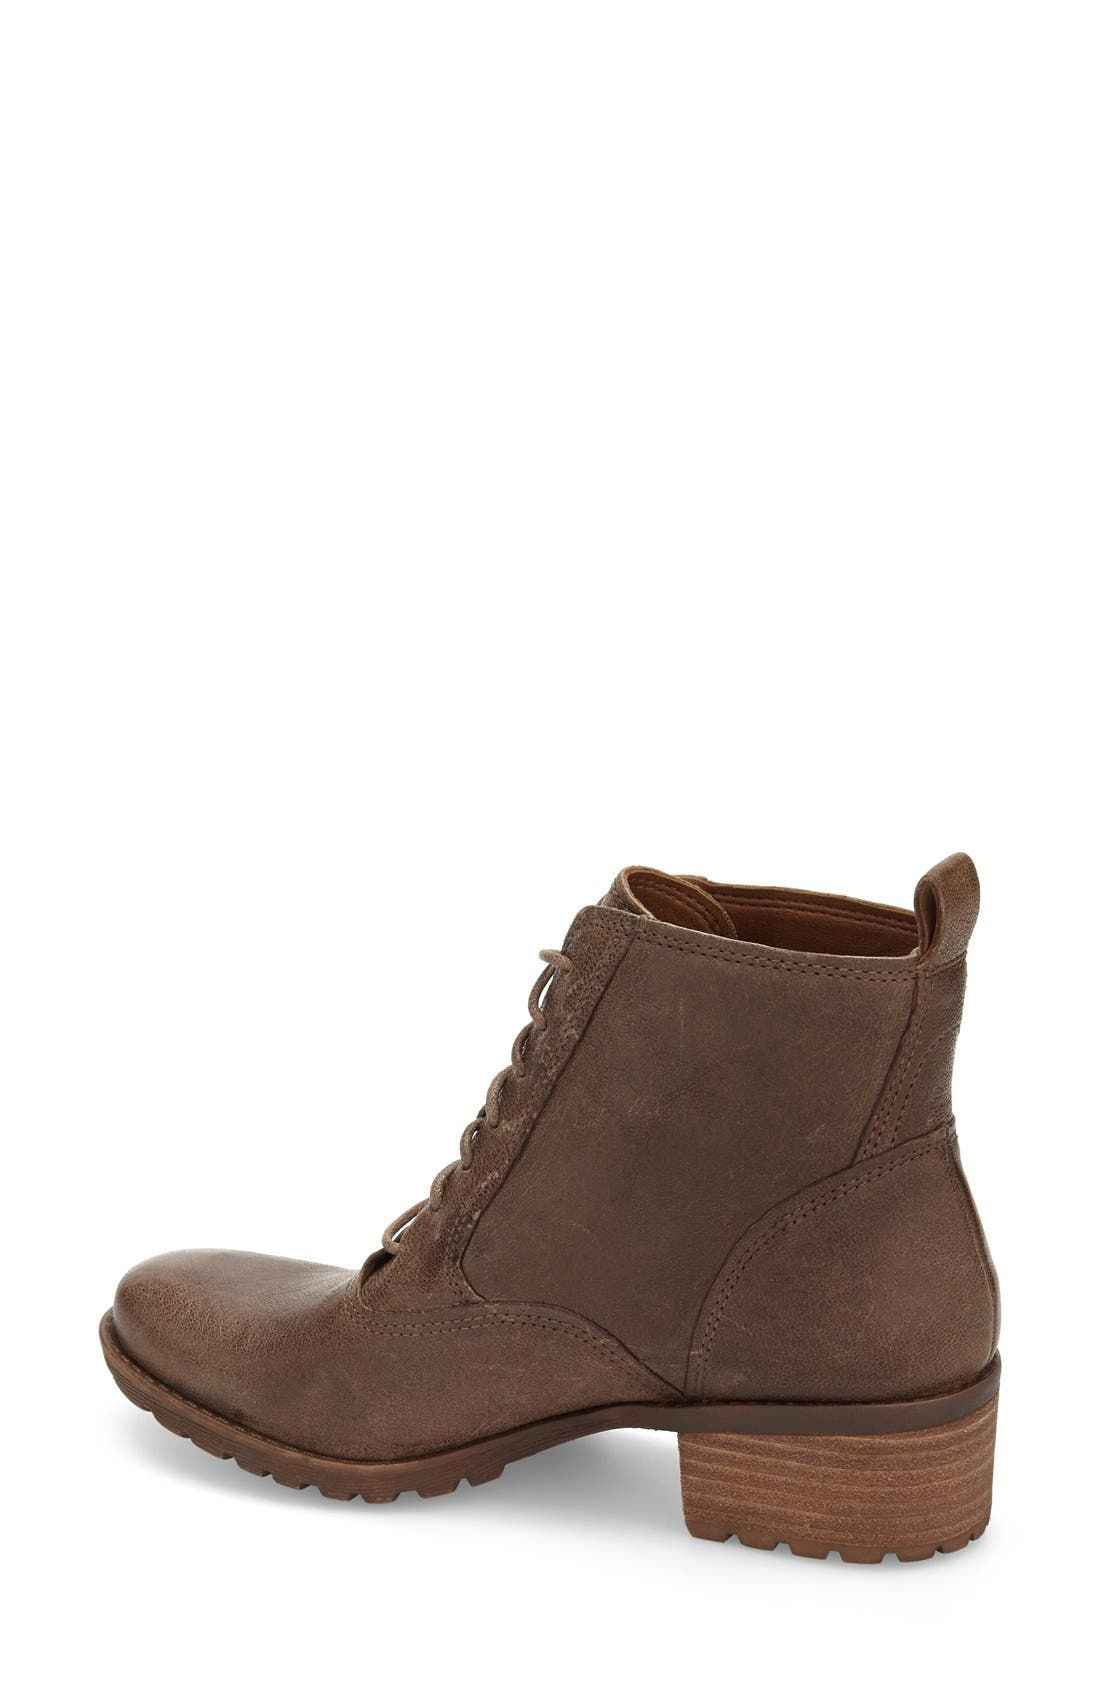 Alternate Image 2  - Lucky Brand 'Giorgia' Lace Up Bootie (Women)